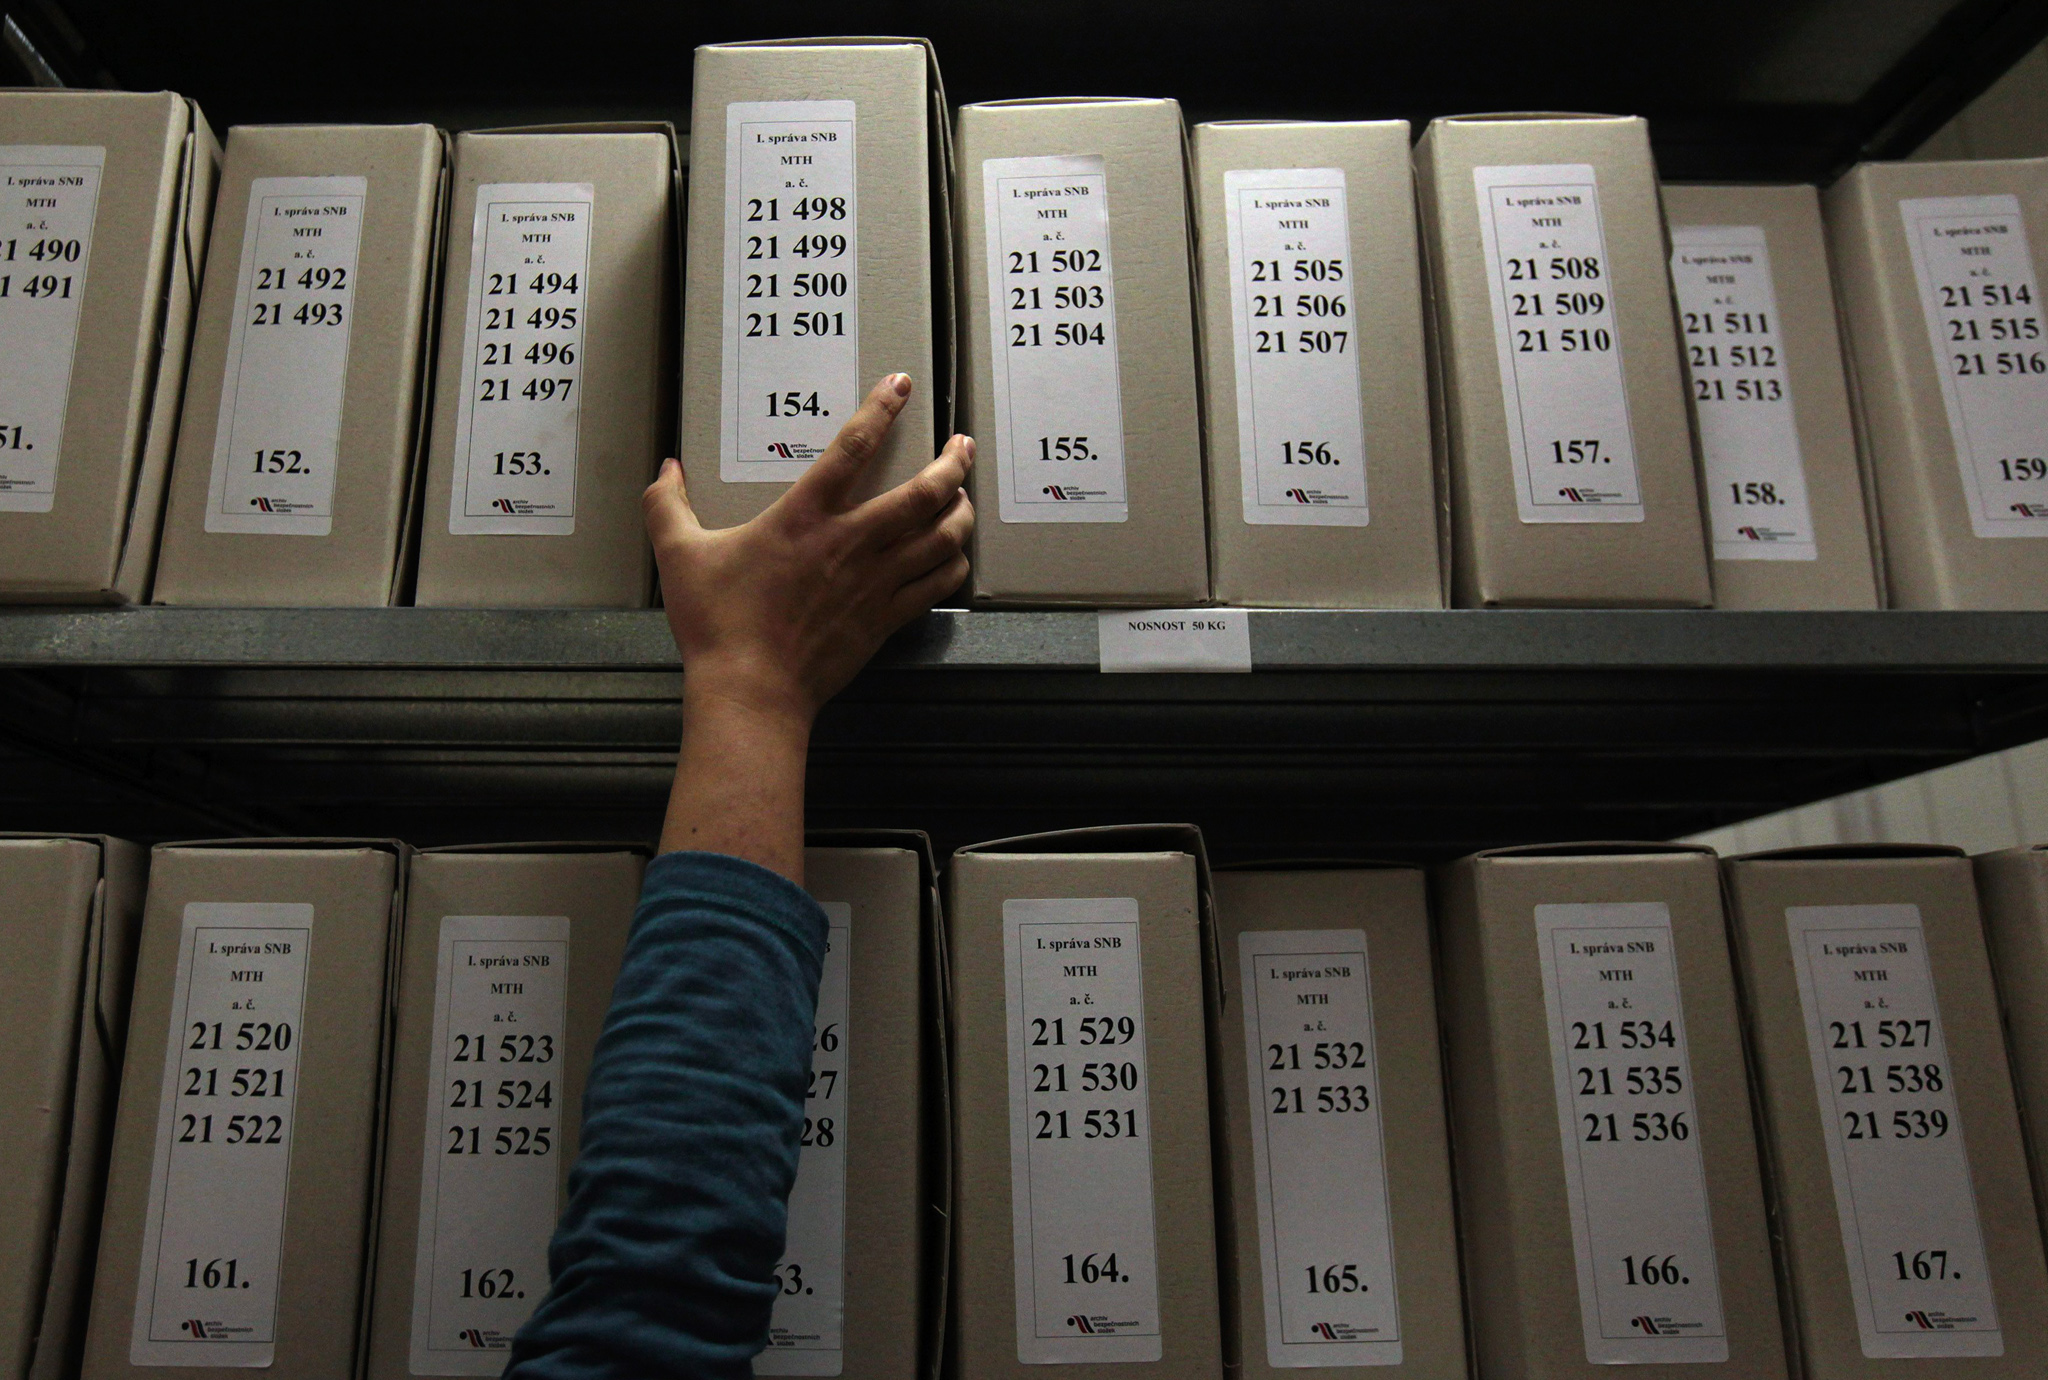 A worker of Security Services Archive searches files in The Institute for the Study of Totalitarian Regimes in Prague. When Czechs threw off Communism in 1989, they adopted strict rules marginalising anyone with ties to the repressive old regime. But now they are asking whether it's time to move on. The soul-searching has been stirred by Andrej Babis, a businessman-turned politician poised to join a new coalition government despite allegations - which he denies - of past collaboration with the Communist secret police.